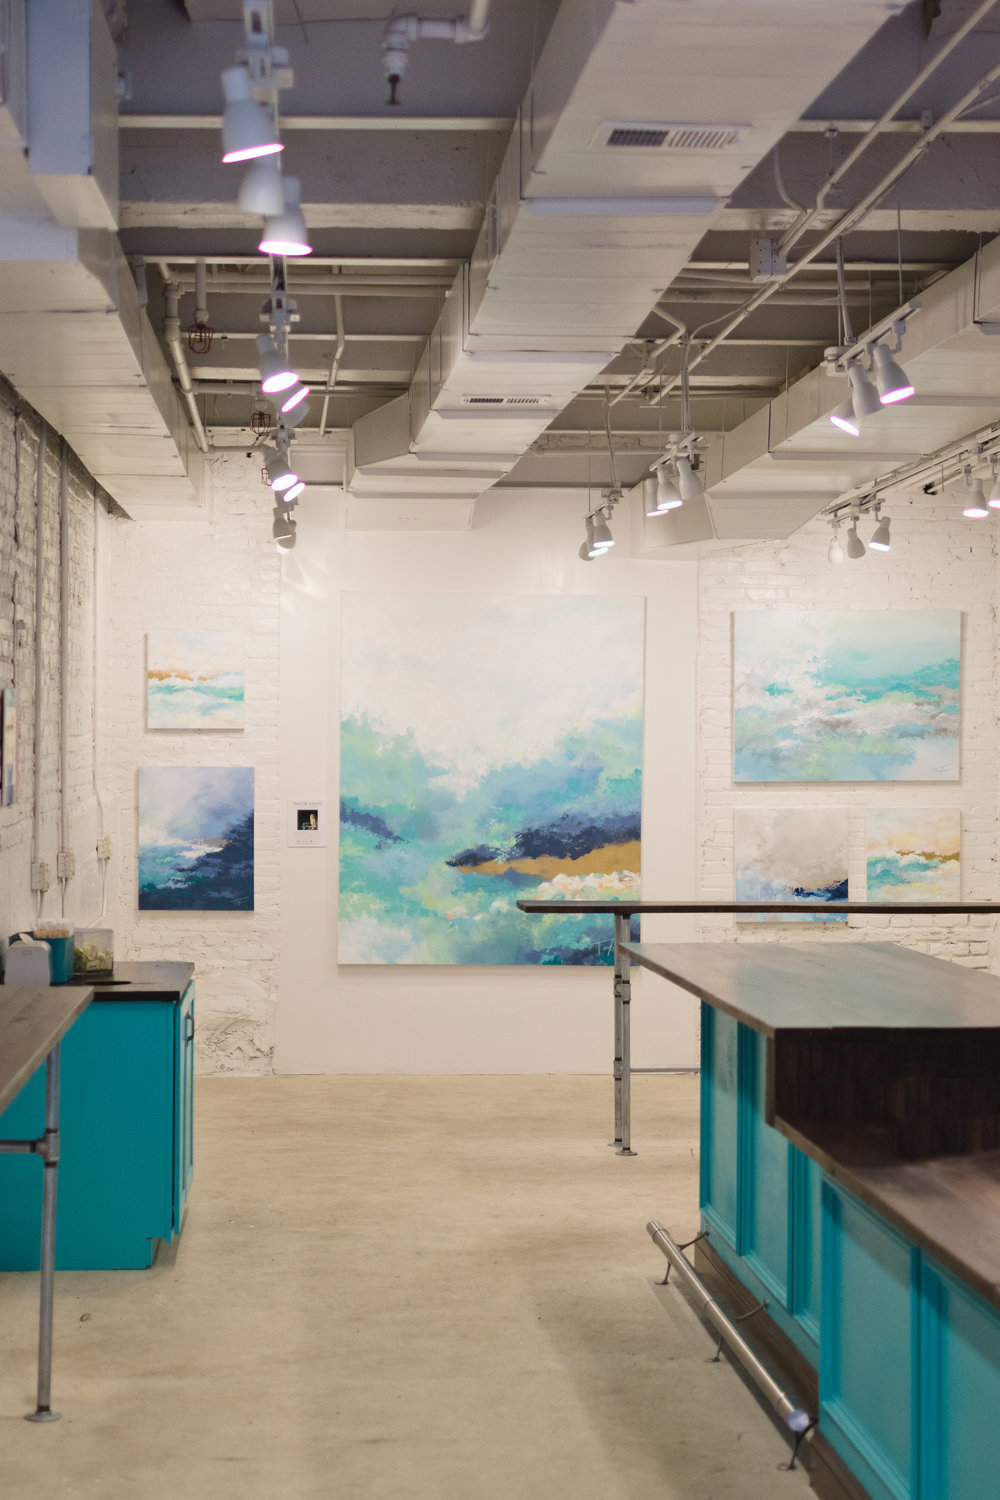 Interested in renting our store space? - Let's chat! Our Georgetown store is perfect for small to medium sized events.Location3327 Cady's Alley NW. Right in the heart of historic Georgetown.Capacity1,100 square feet, stool seating for 12, ideal for groups up to 40AmenitiesWashington DC's best doughnuts, locally roasted coffee, tea, milk, juices. Bar-style seating, paper serving ware, local art, bathroomAvailabilityWeekdays after 5PM, Weekends after 6PM